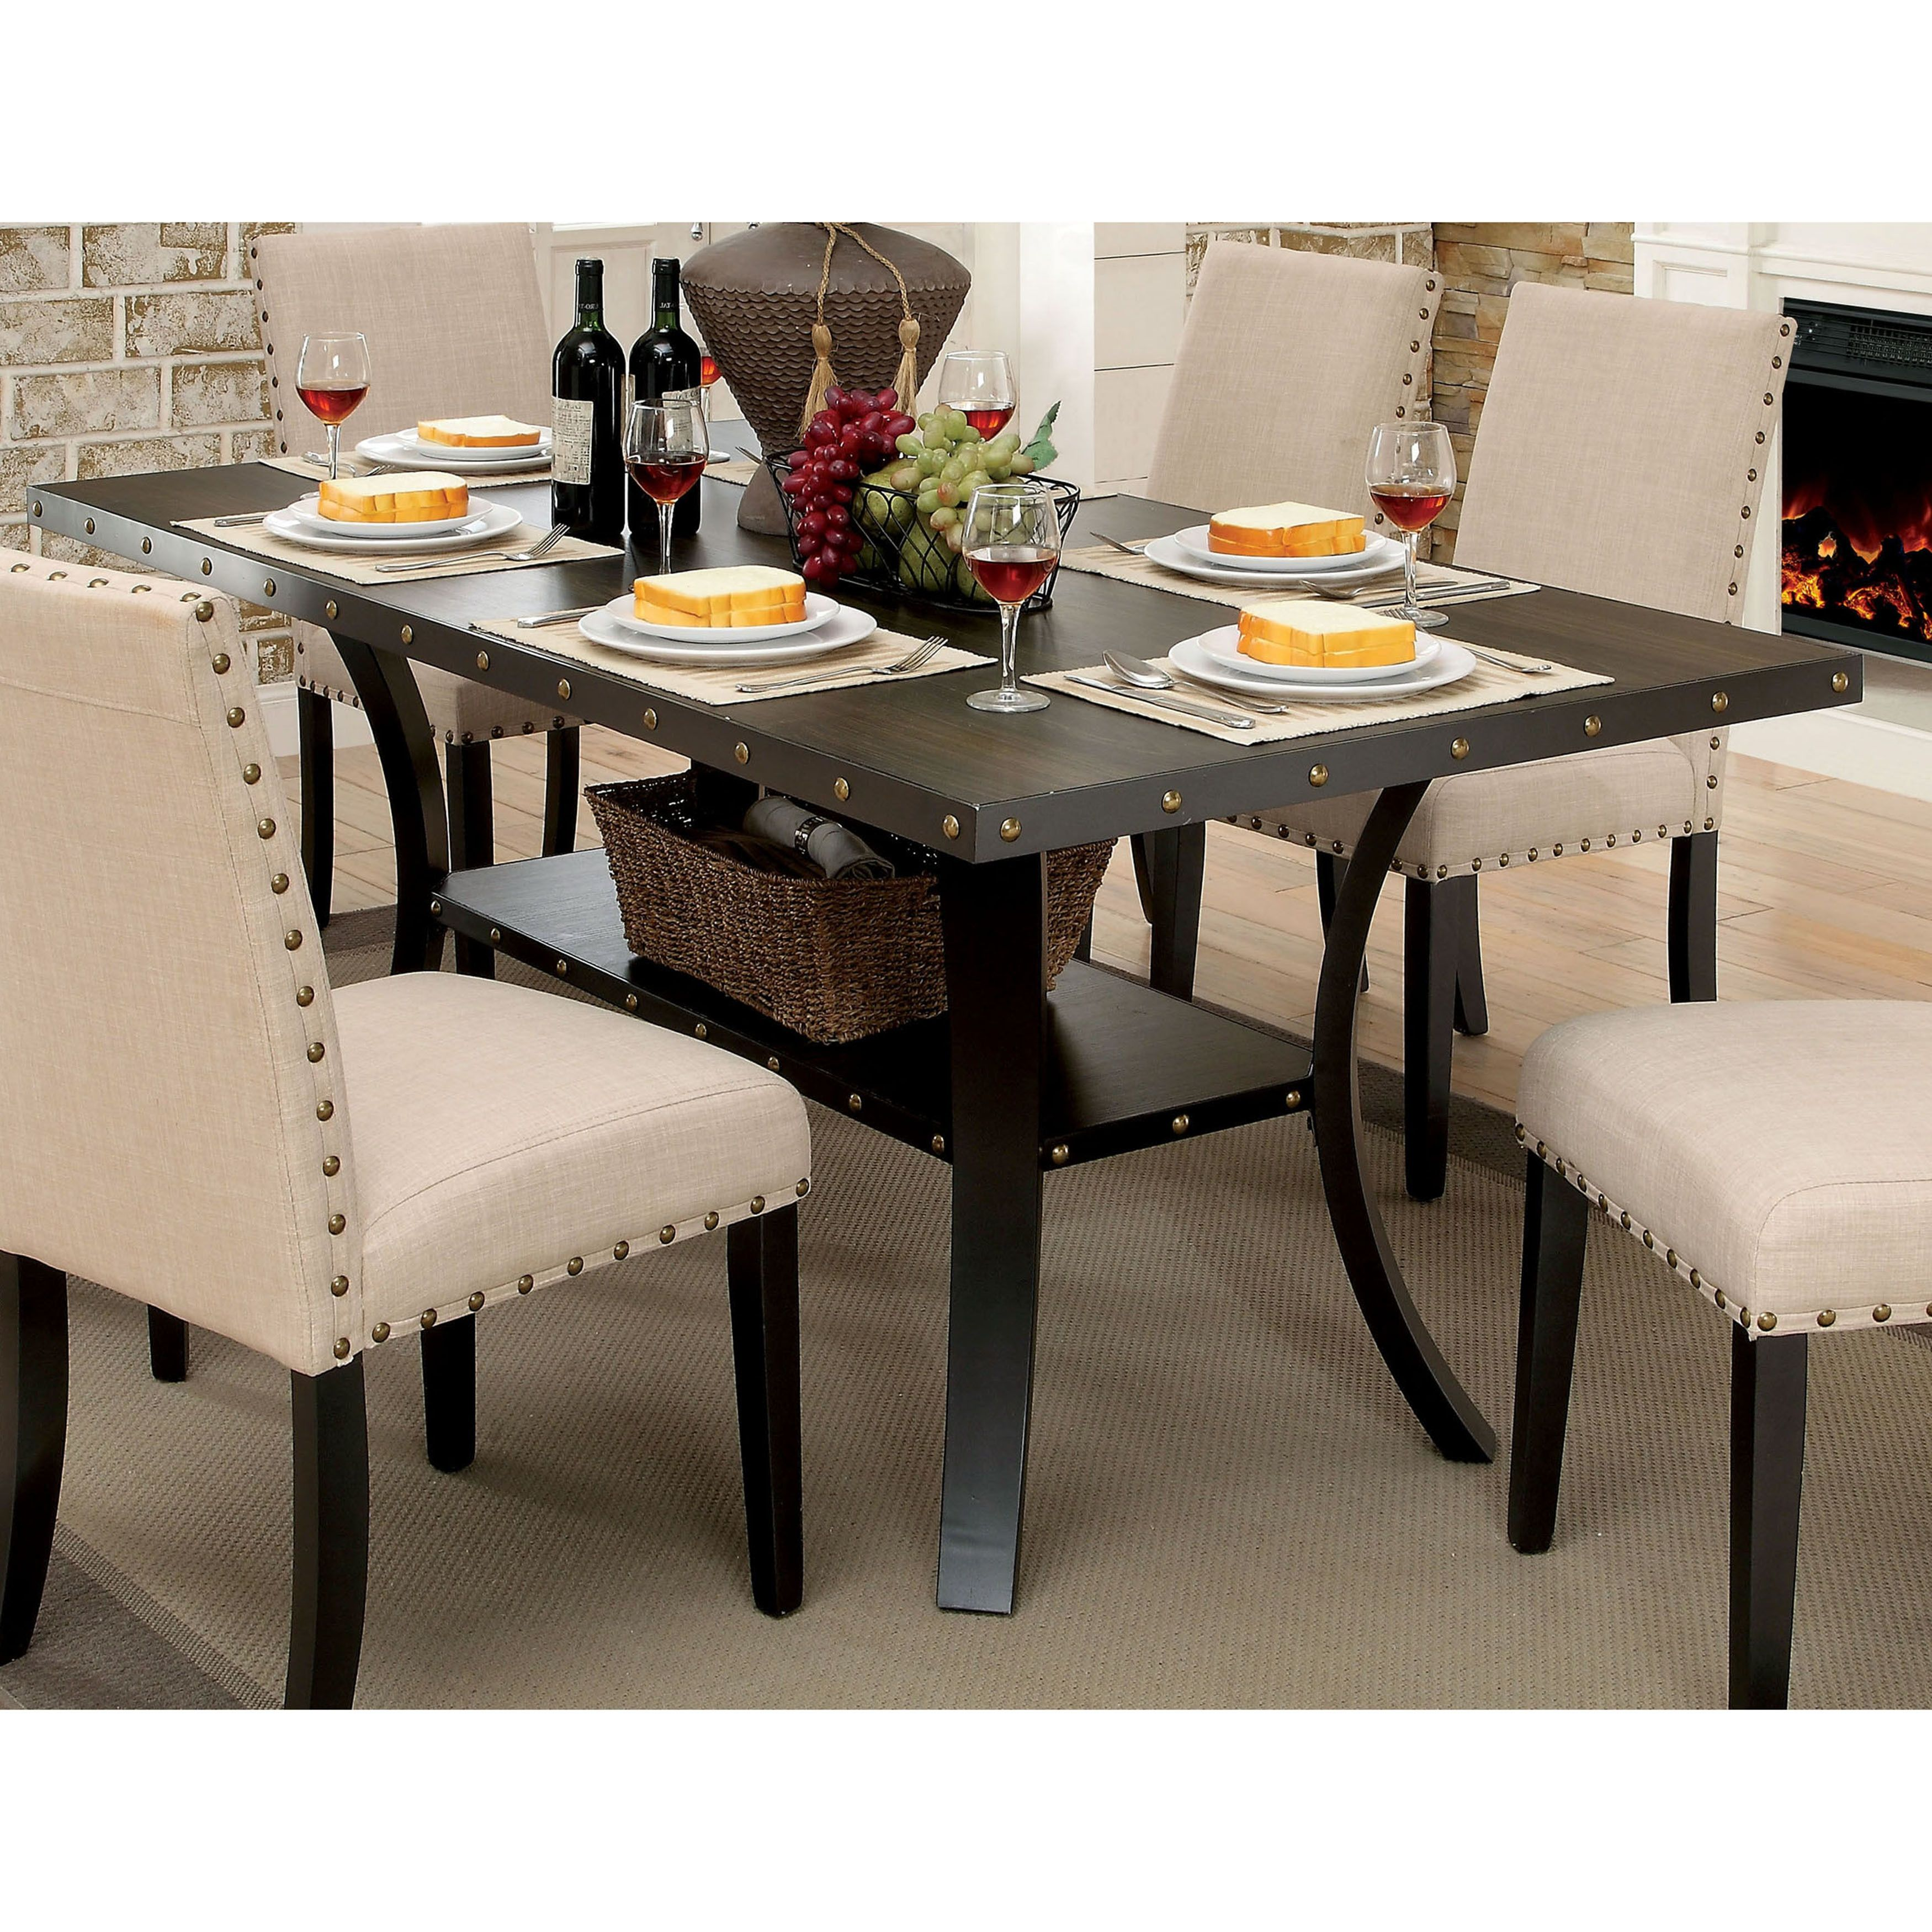 Furniture Of America Simmerton Walnut Brown Finish Wood 70 Inch Industrial Dining Table Dining Table Industrial Dining Table Traditional Dining Room Table